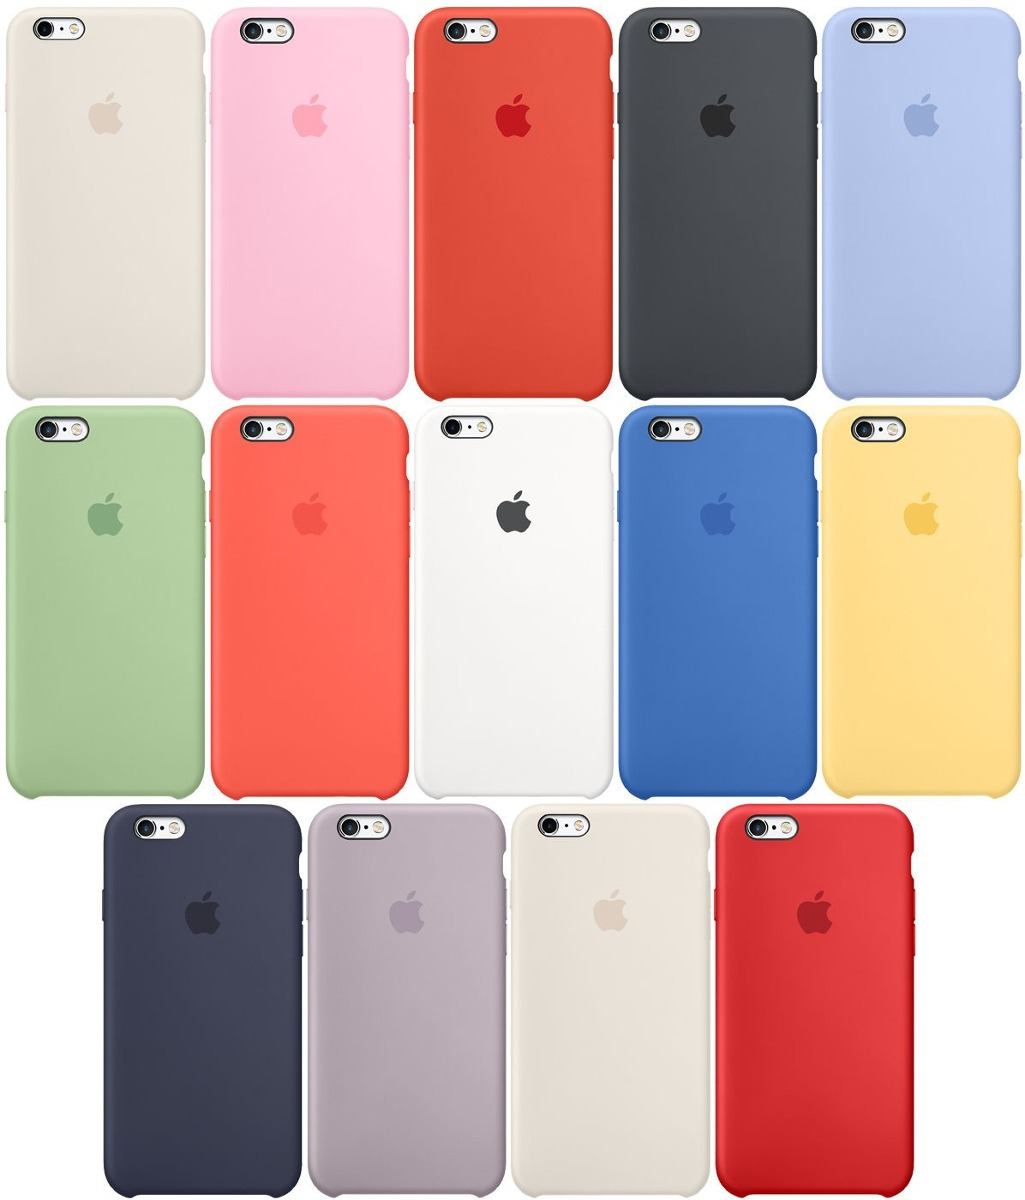 df79905bc49 funda silicone case iphone 6s plus apple original lomas de z. Cargando zoom.